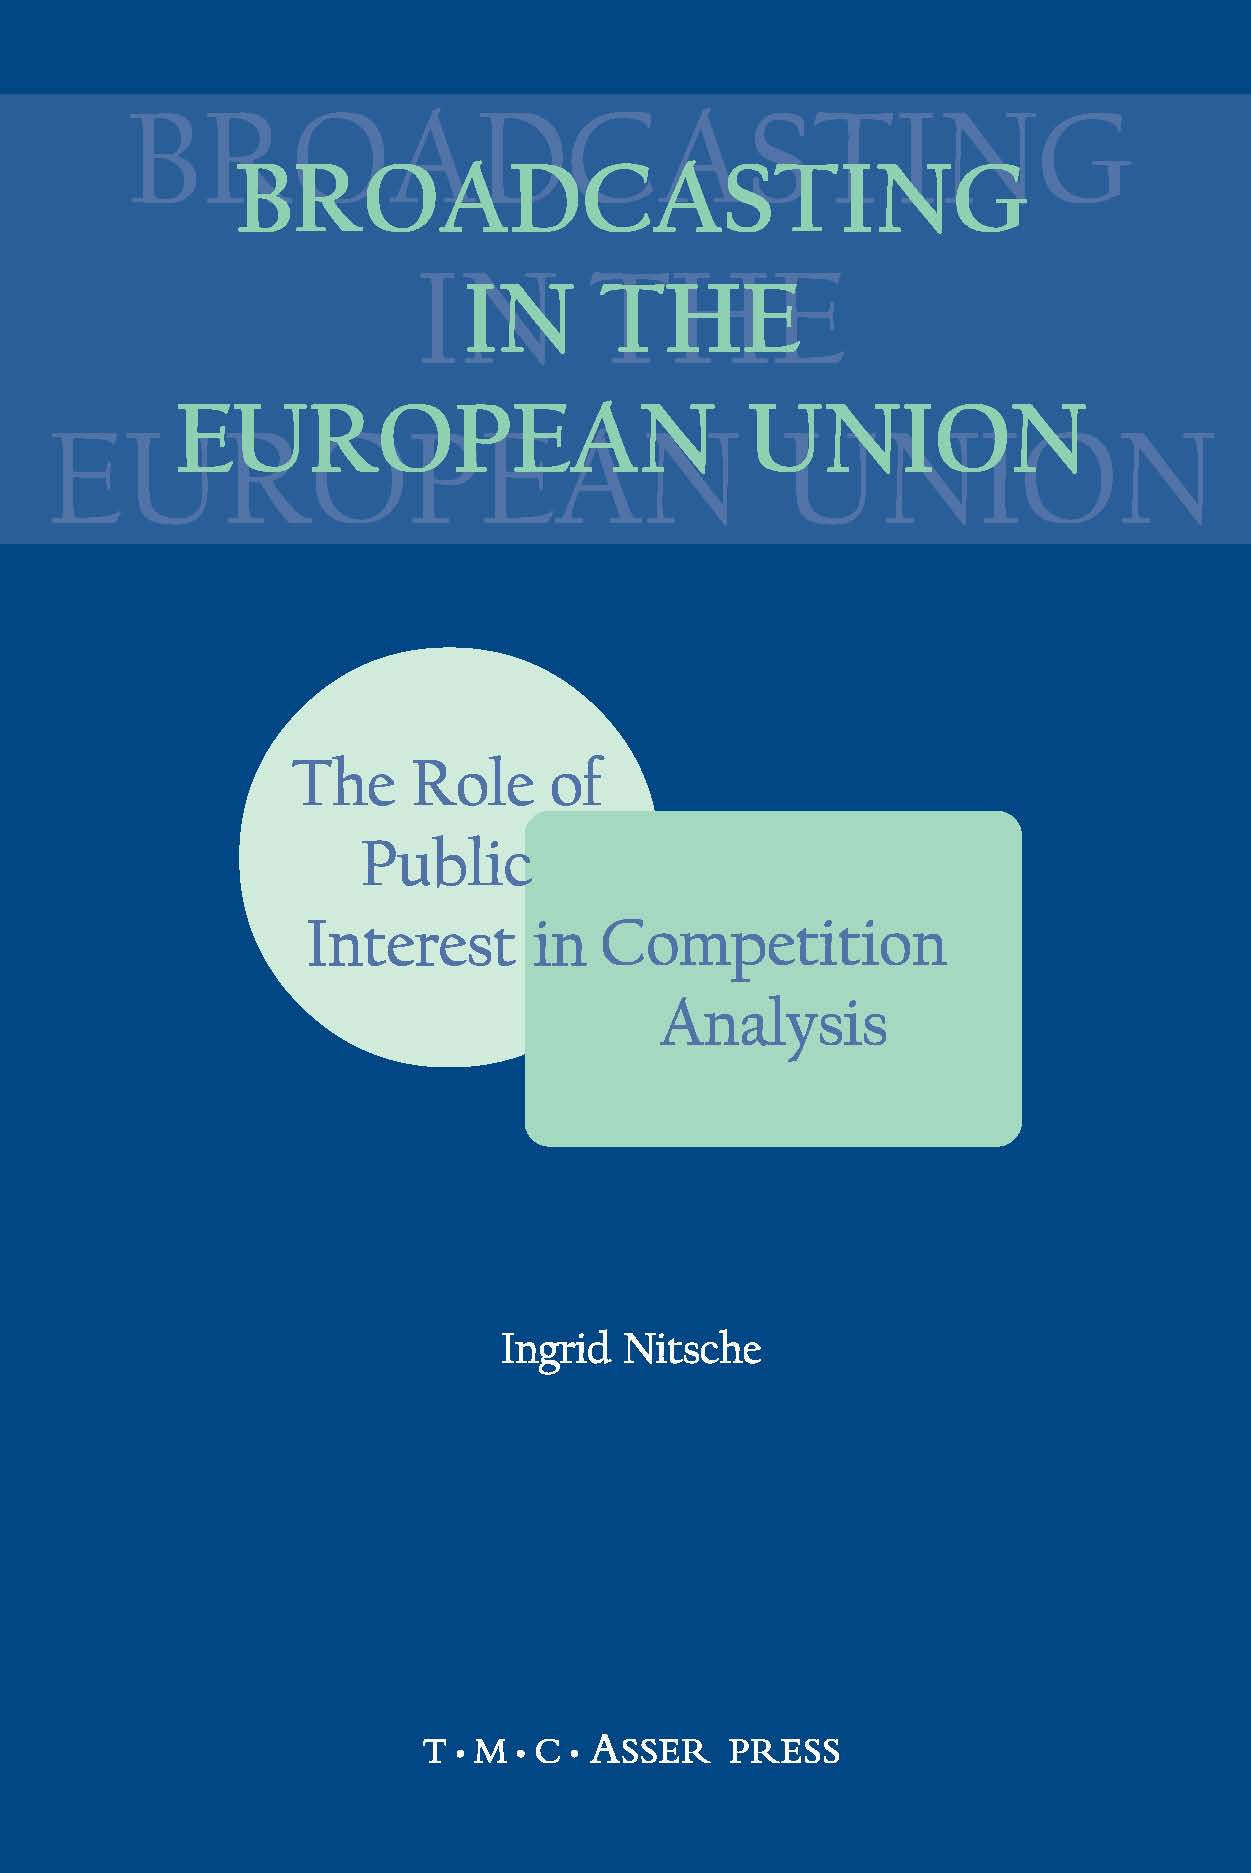 Broadcasting in the European Union - The Role of Public Interest in Competition Analysis